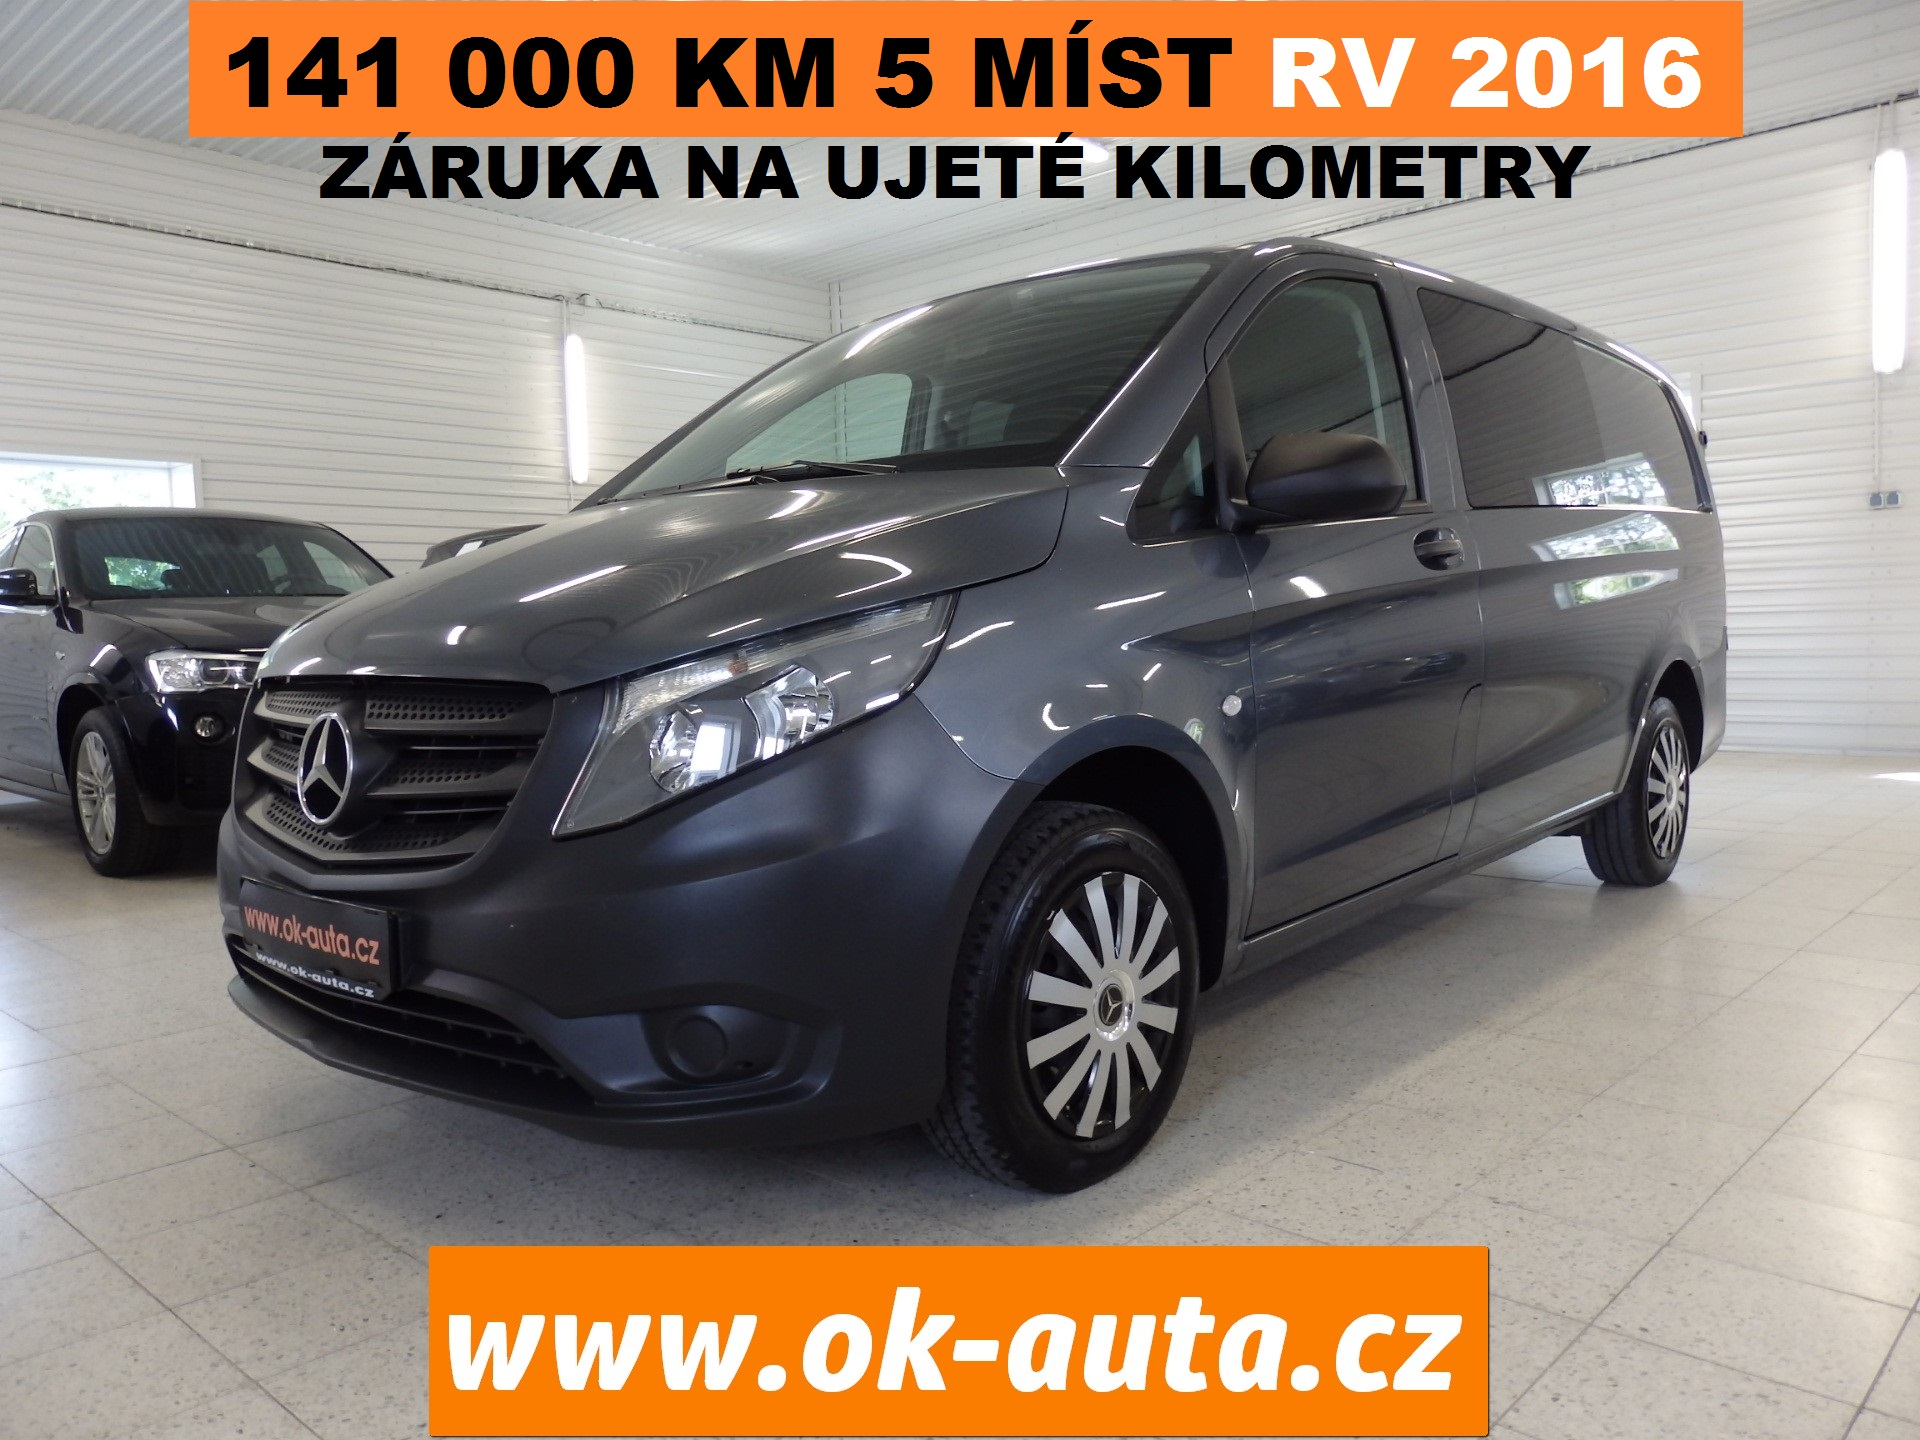 Mercedes-Benz Vito 2.2CDI 114L mixto 04/2016